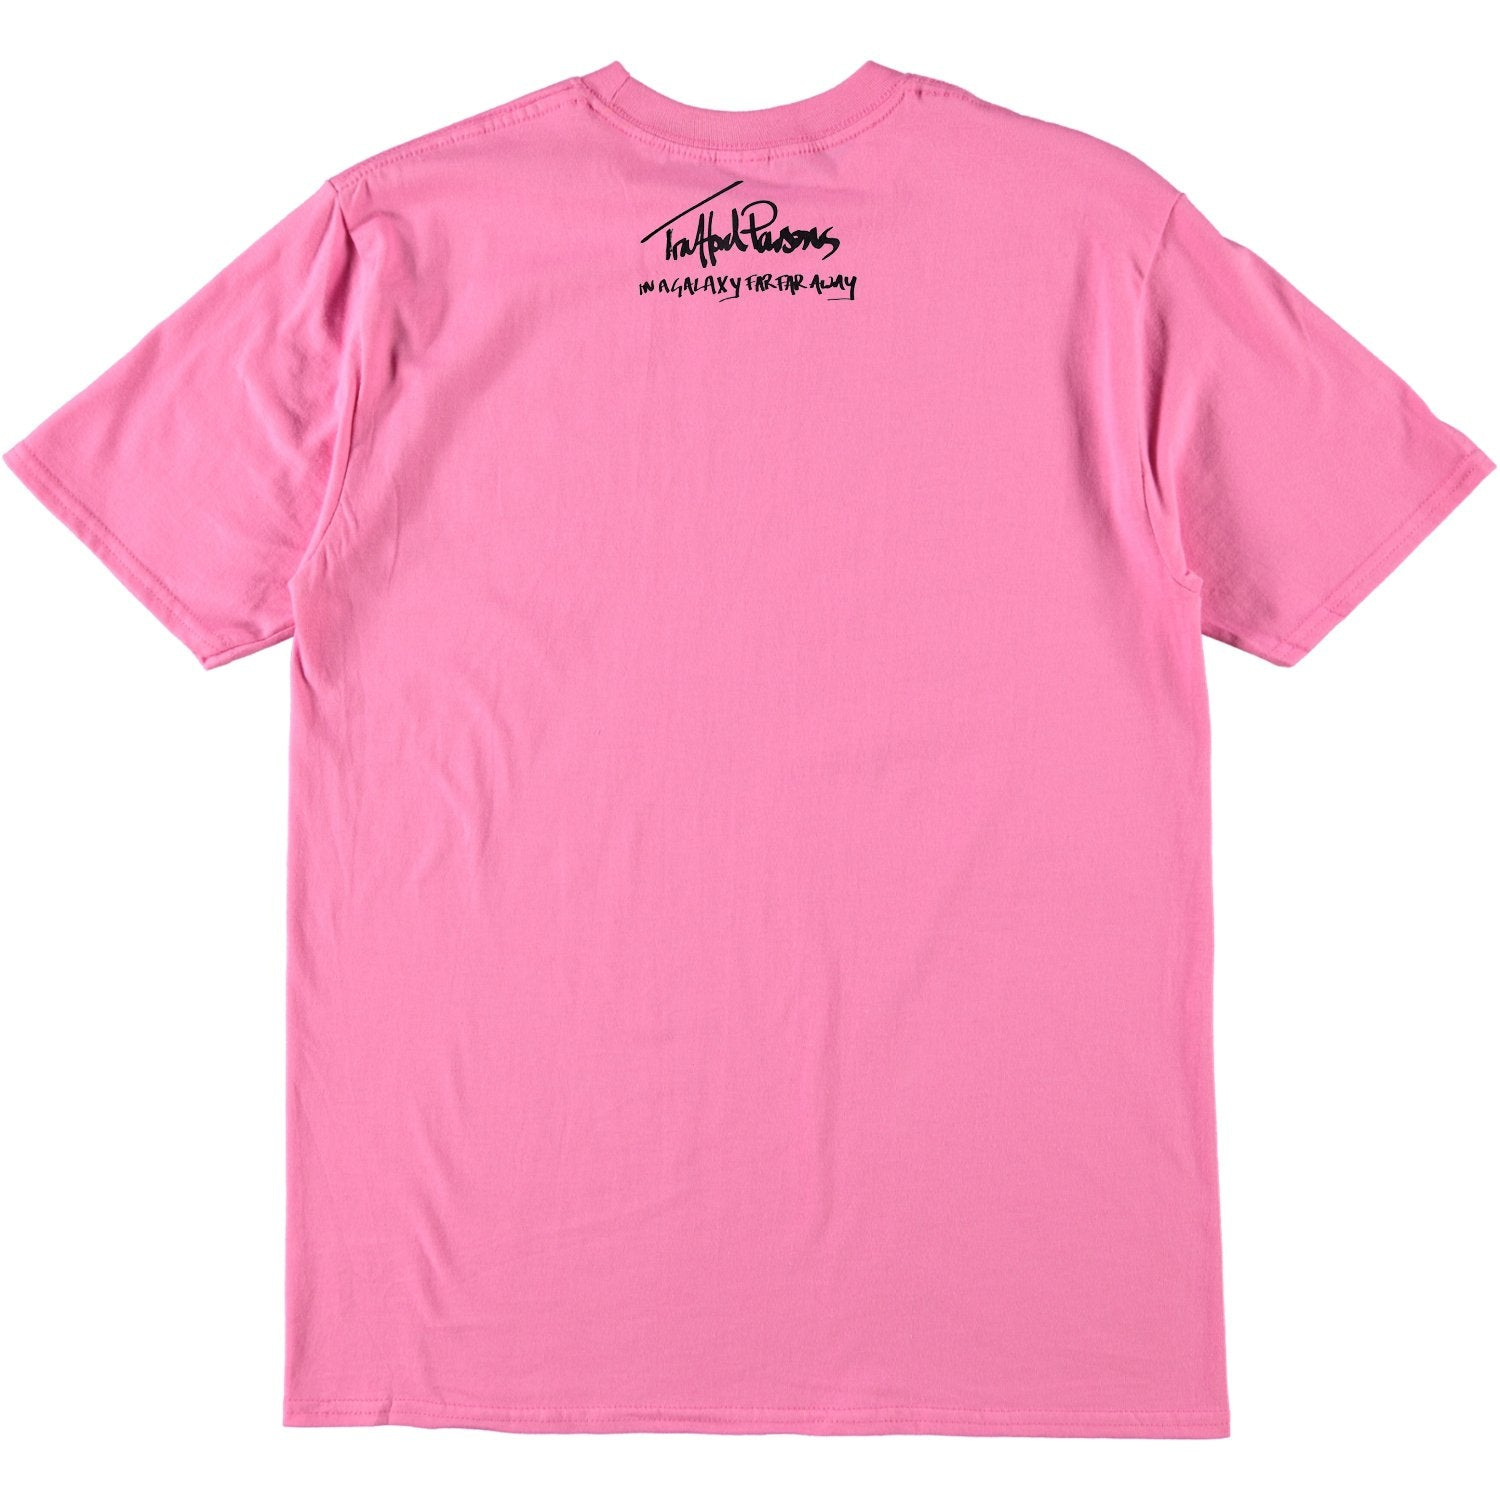 SRM x Trafford Parsons I Was Made For Loving You Tee Line Up Bright Pink